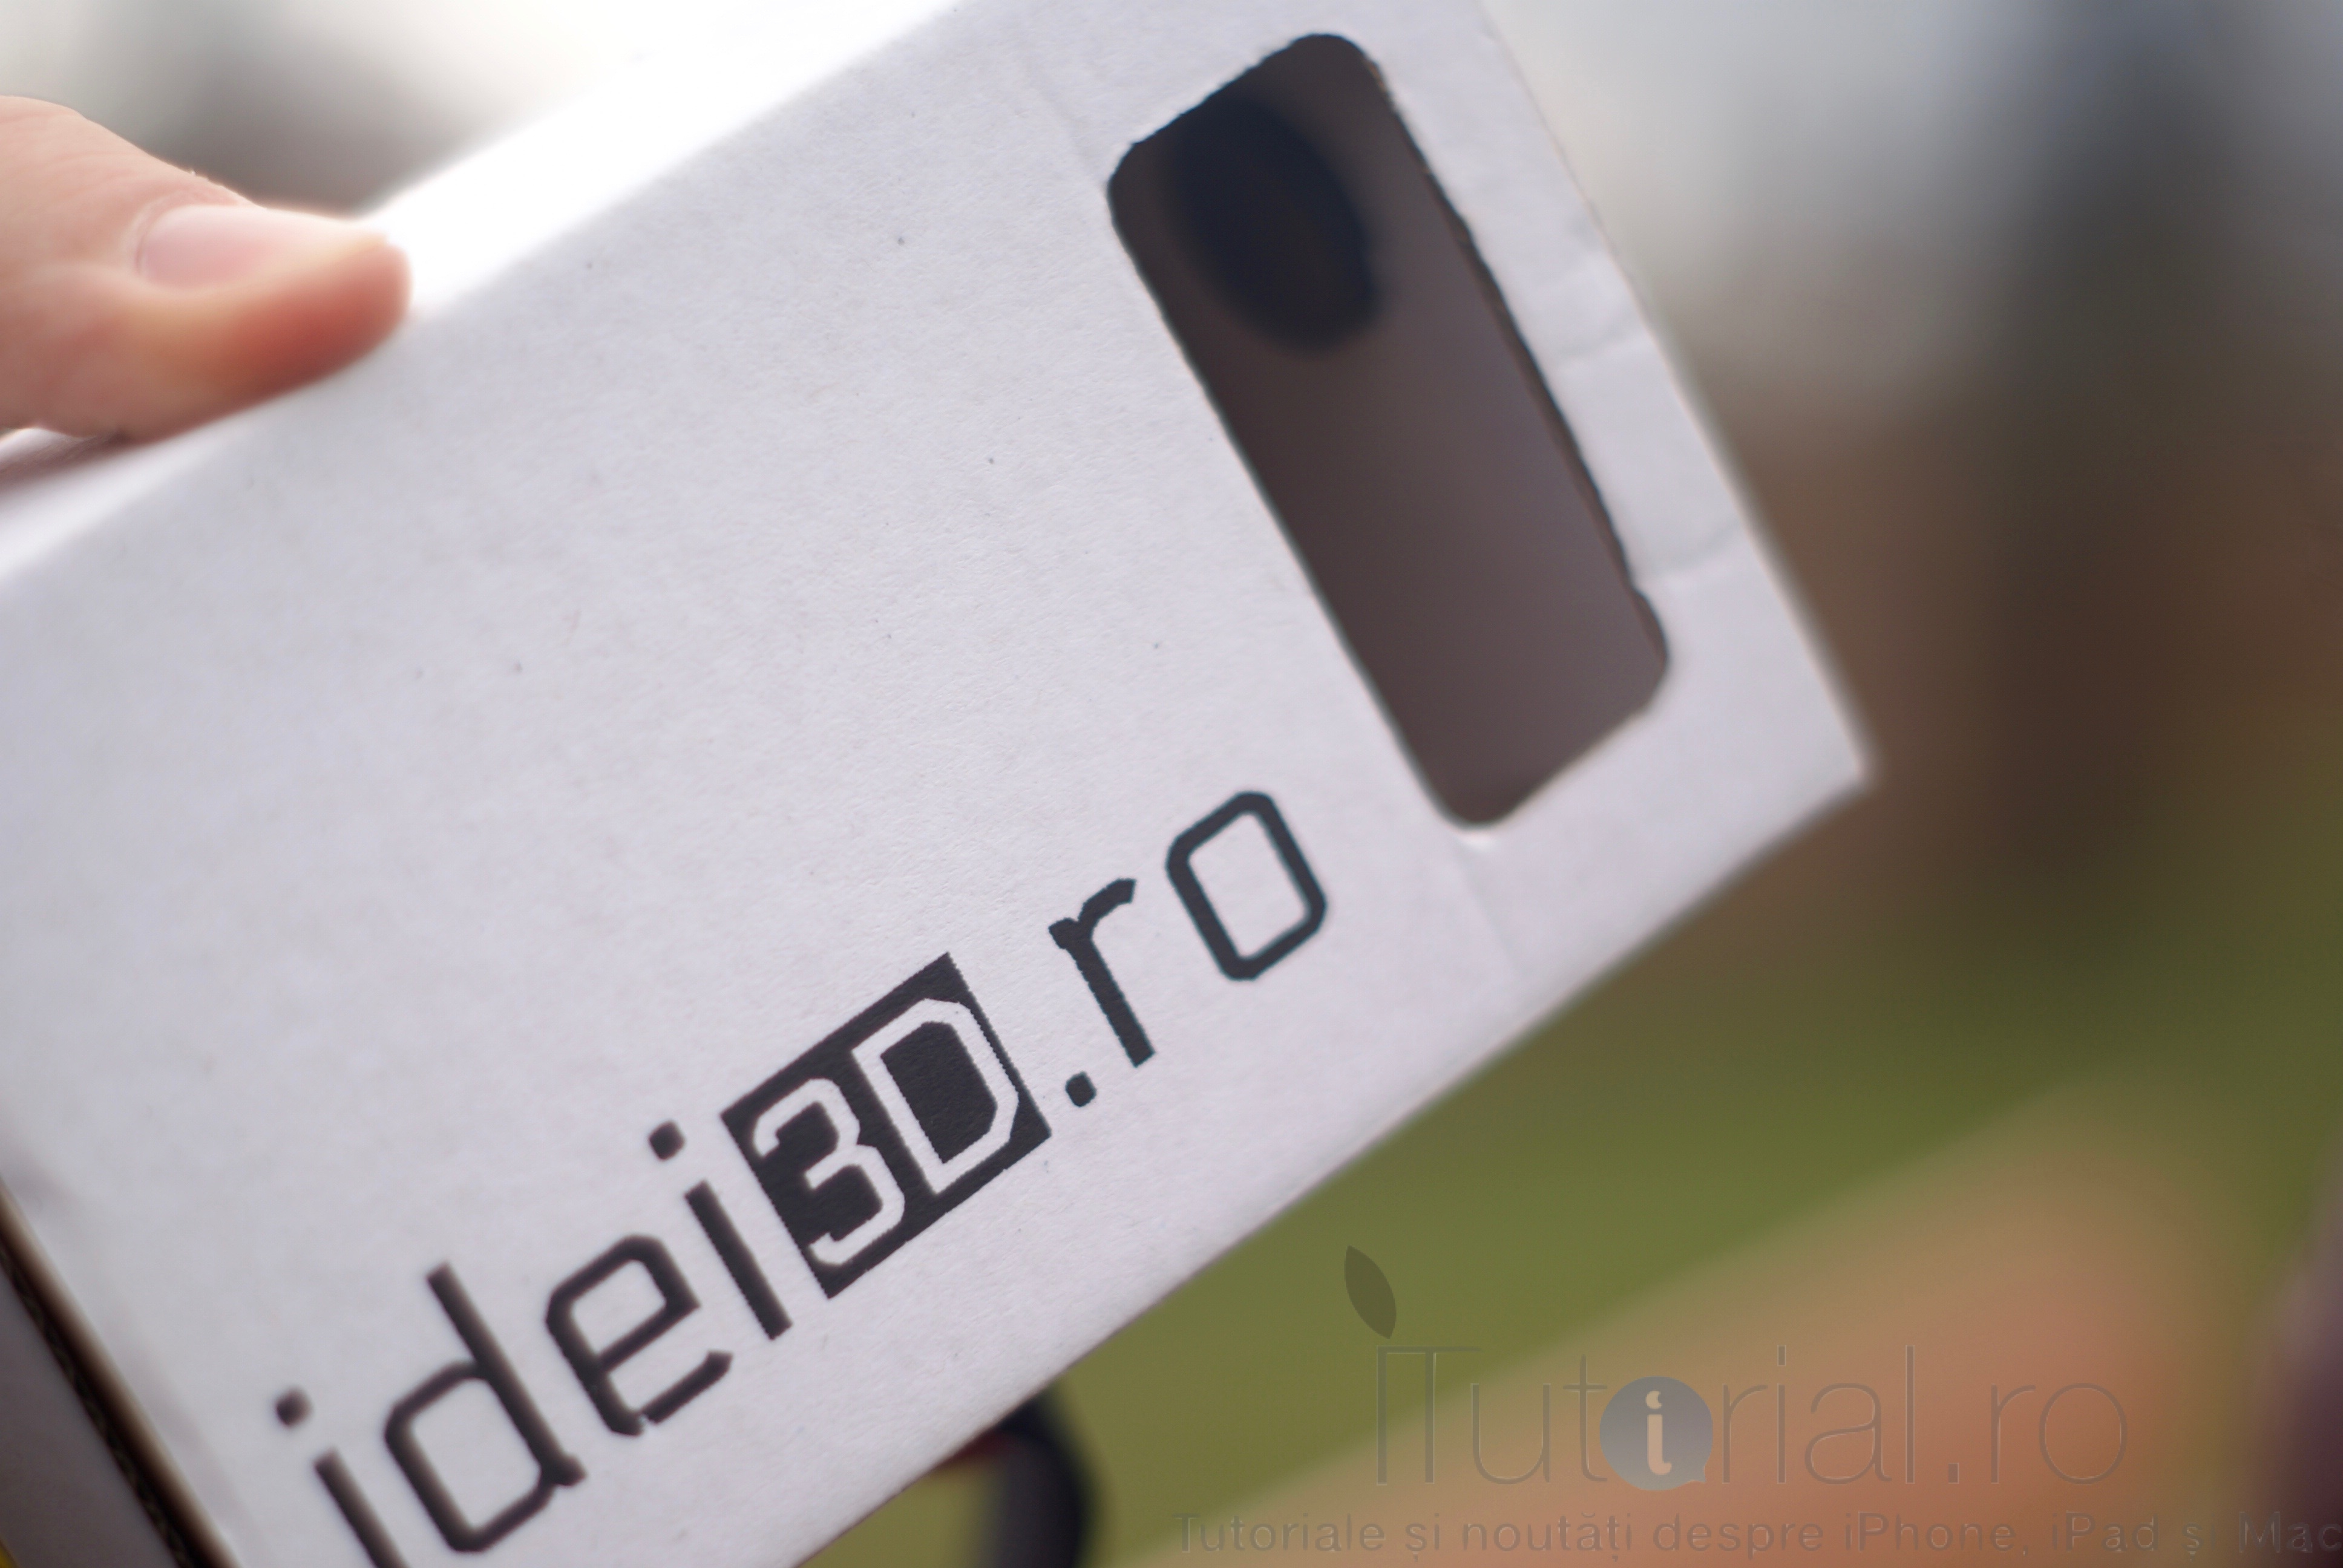 idei3D review